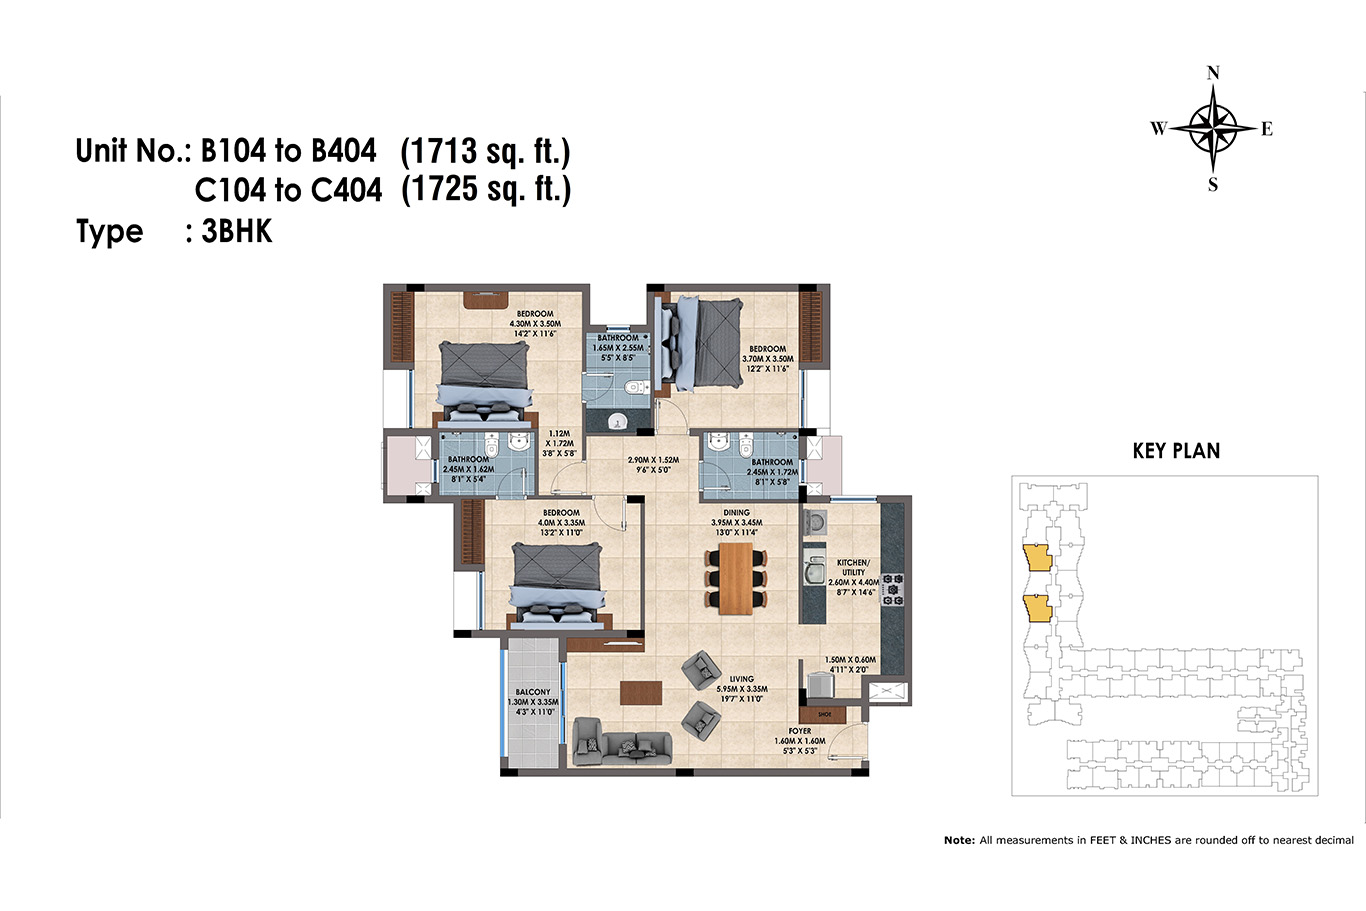 B104 to B404, C103 to C403(3BHK)